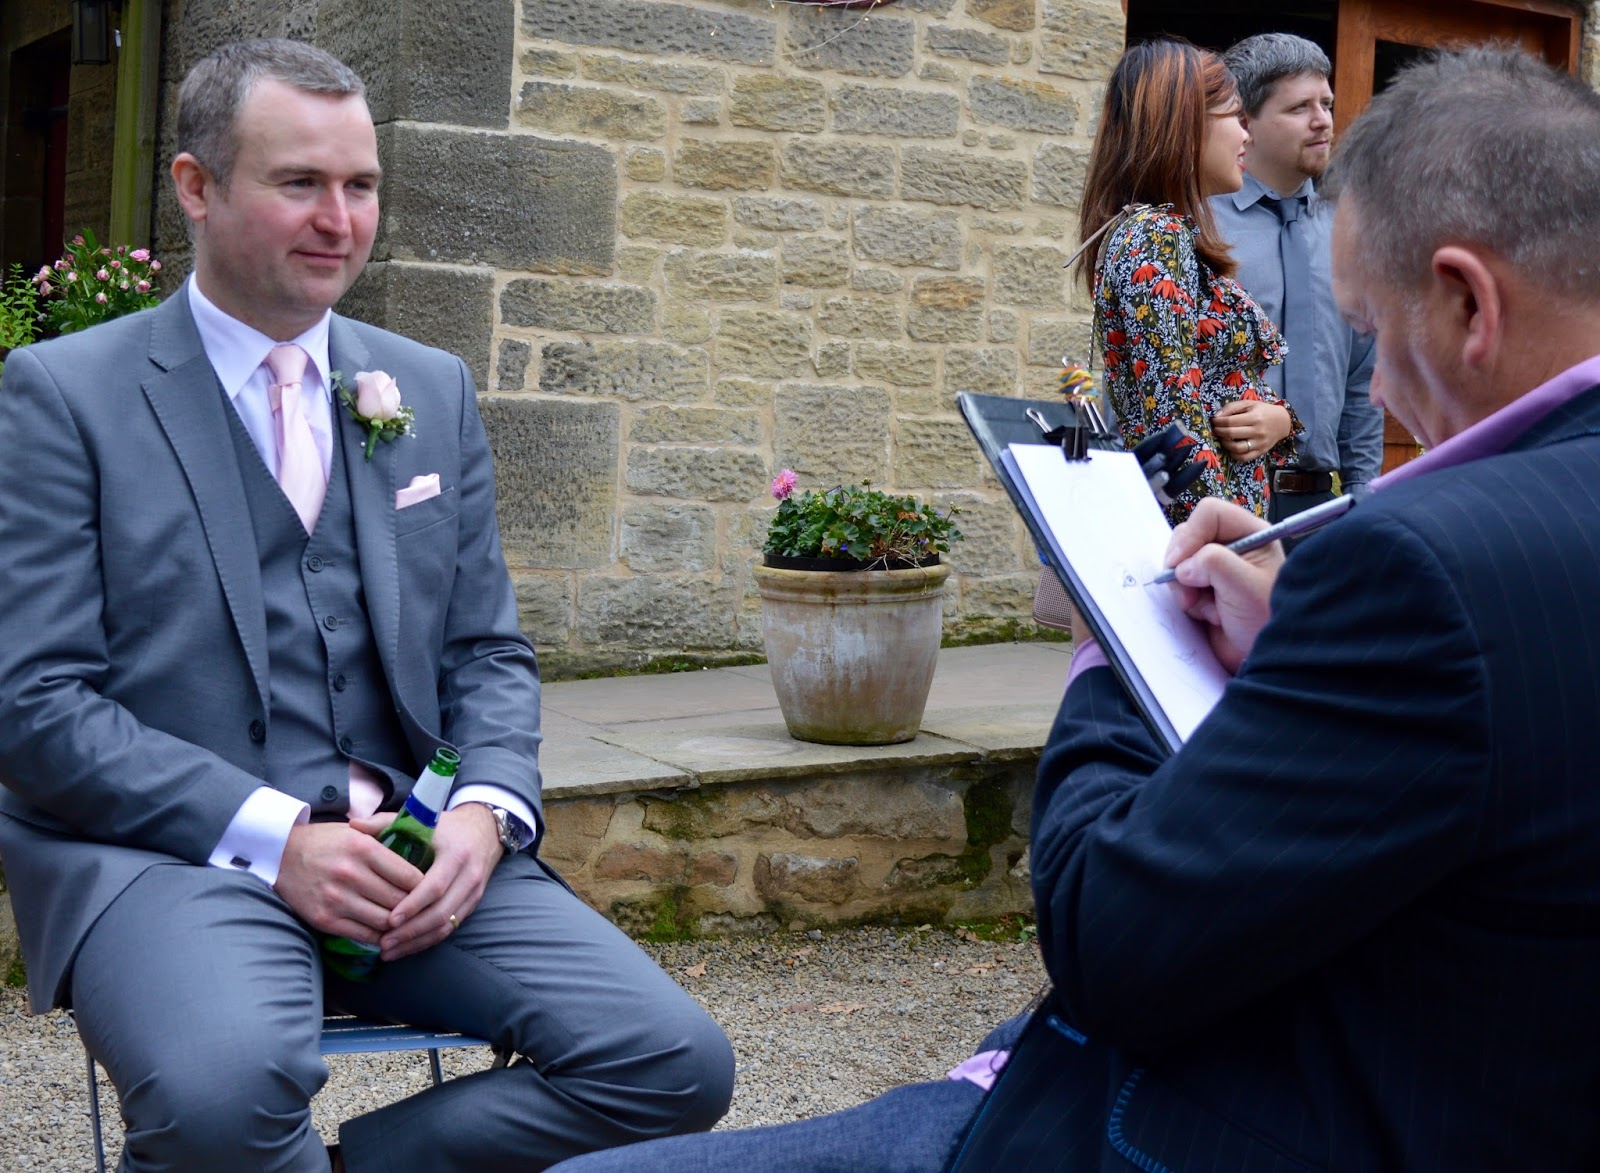 Weddings at The Parlour at Blagdon in Northumberland - caracaturist